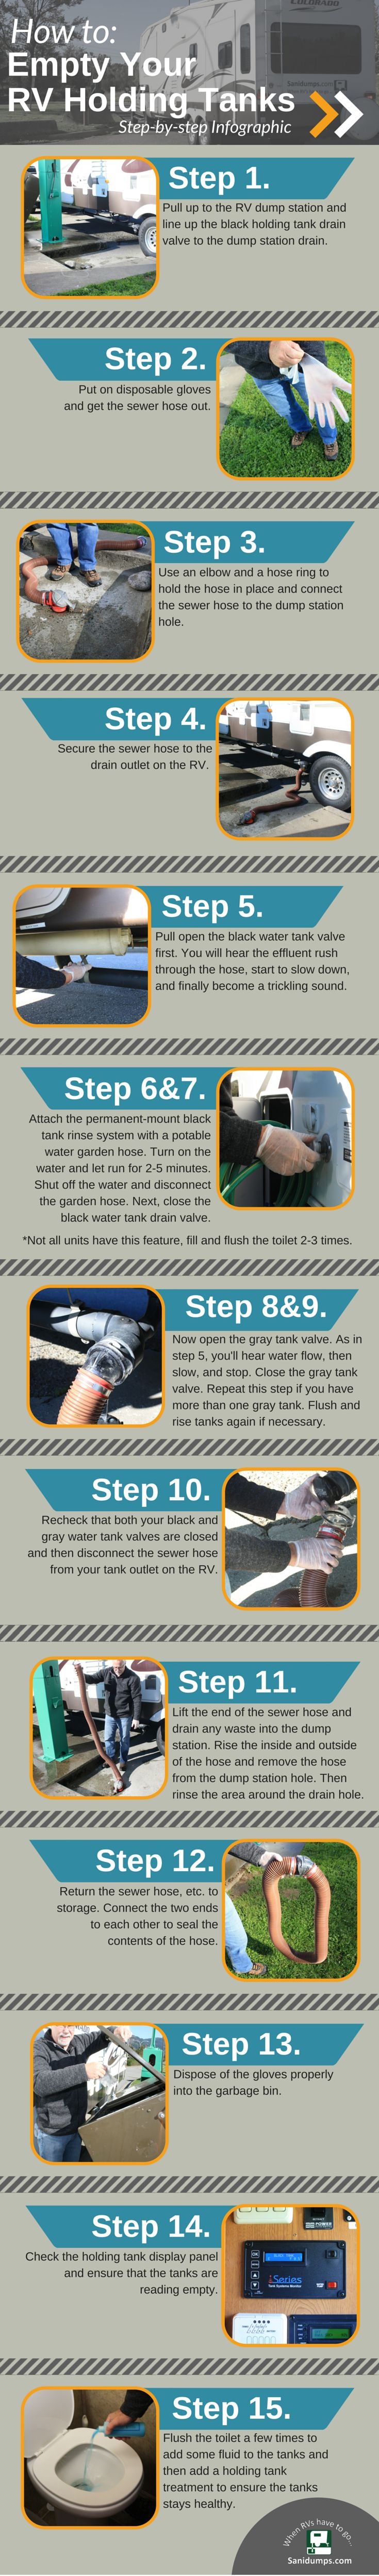 Link: http://www.sanidumps.com/howtoemptyyourtanks.php How to empty #RV holding tanks #infographic | Tips for #RVing | Sanidumps.com